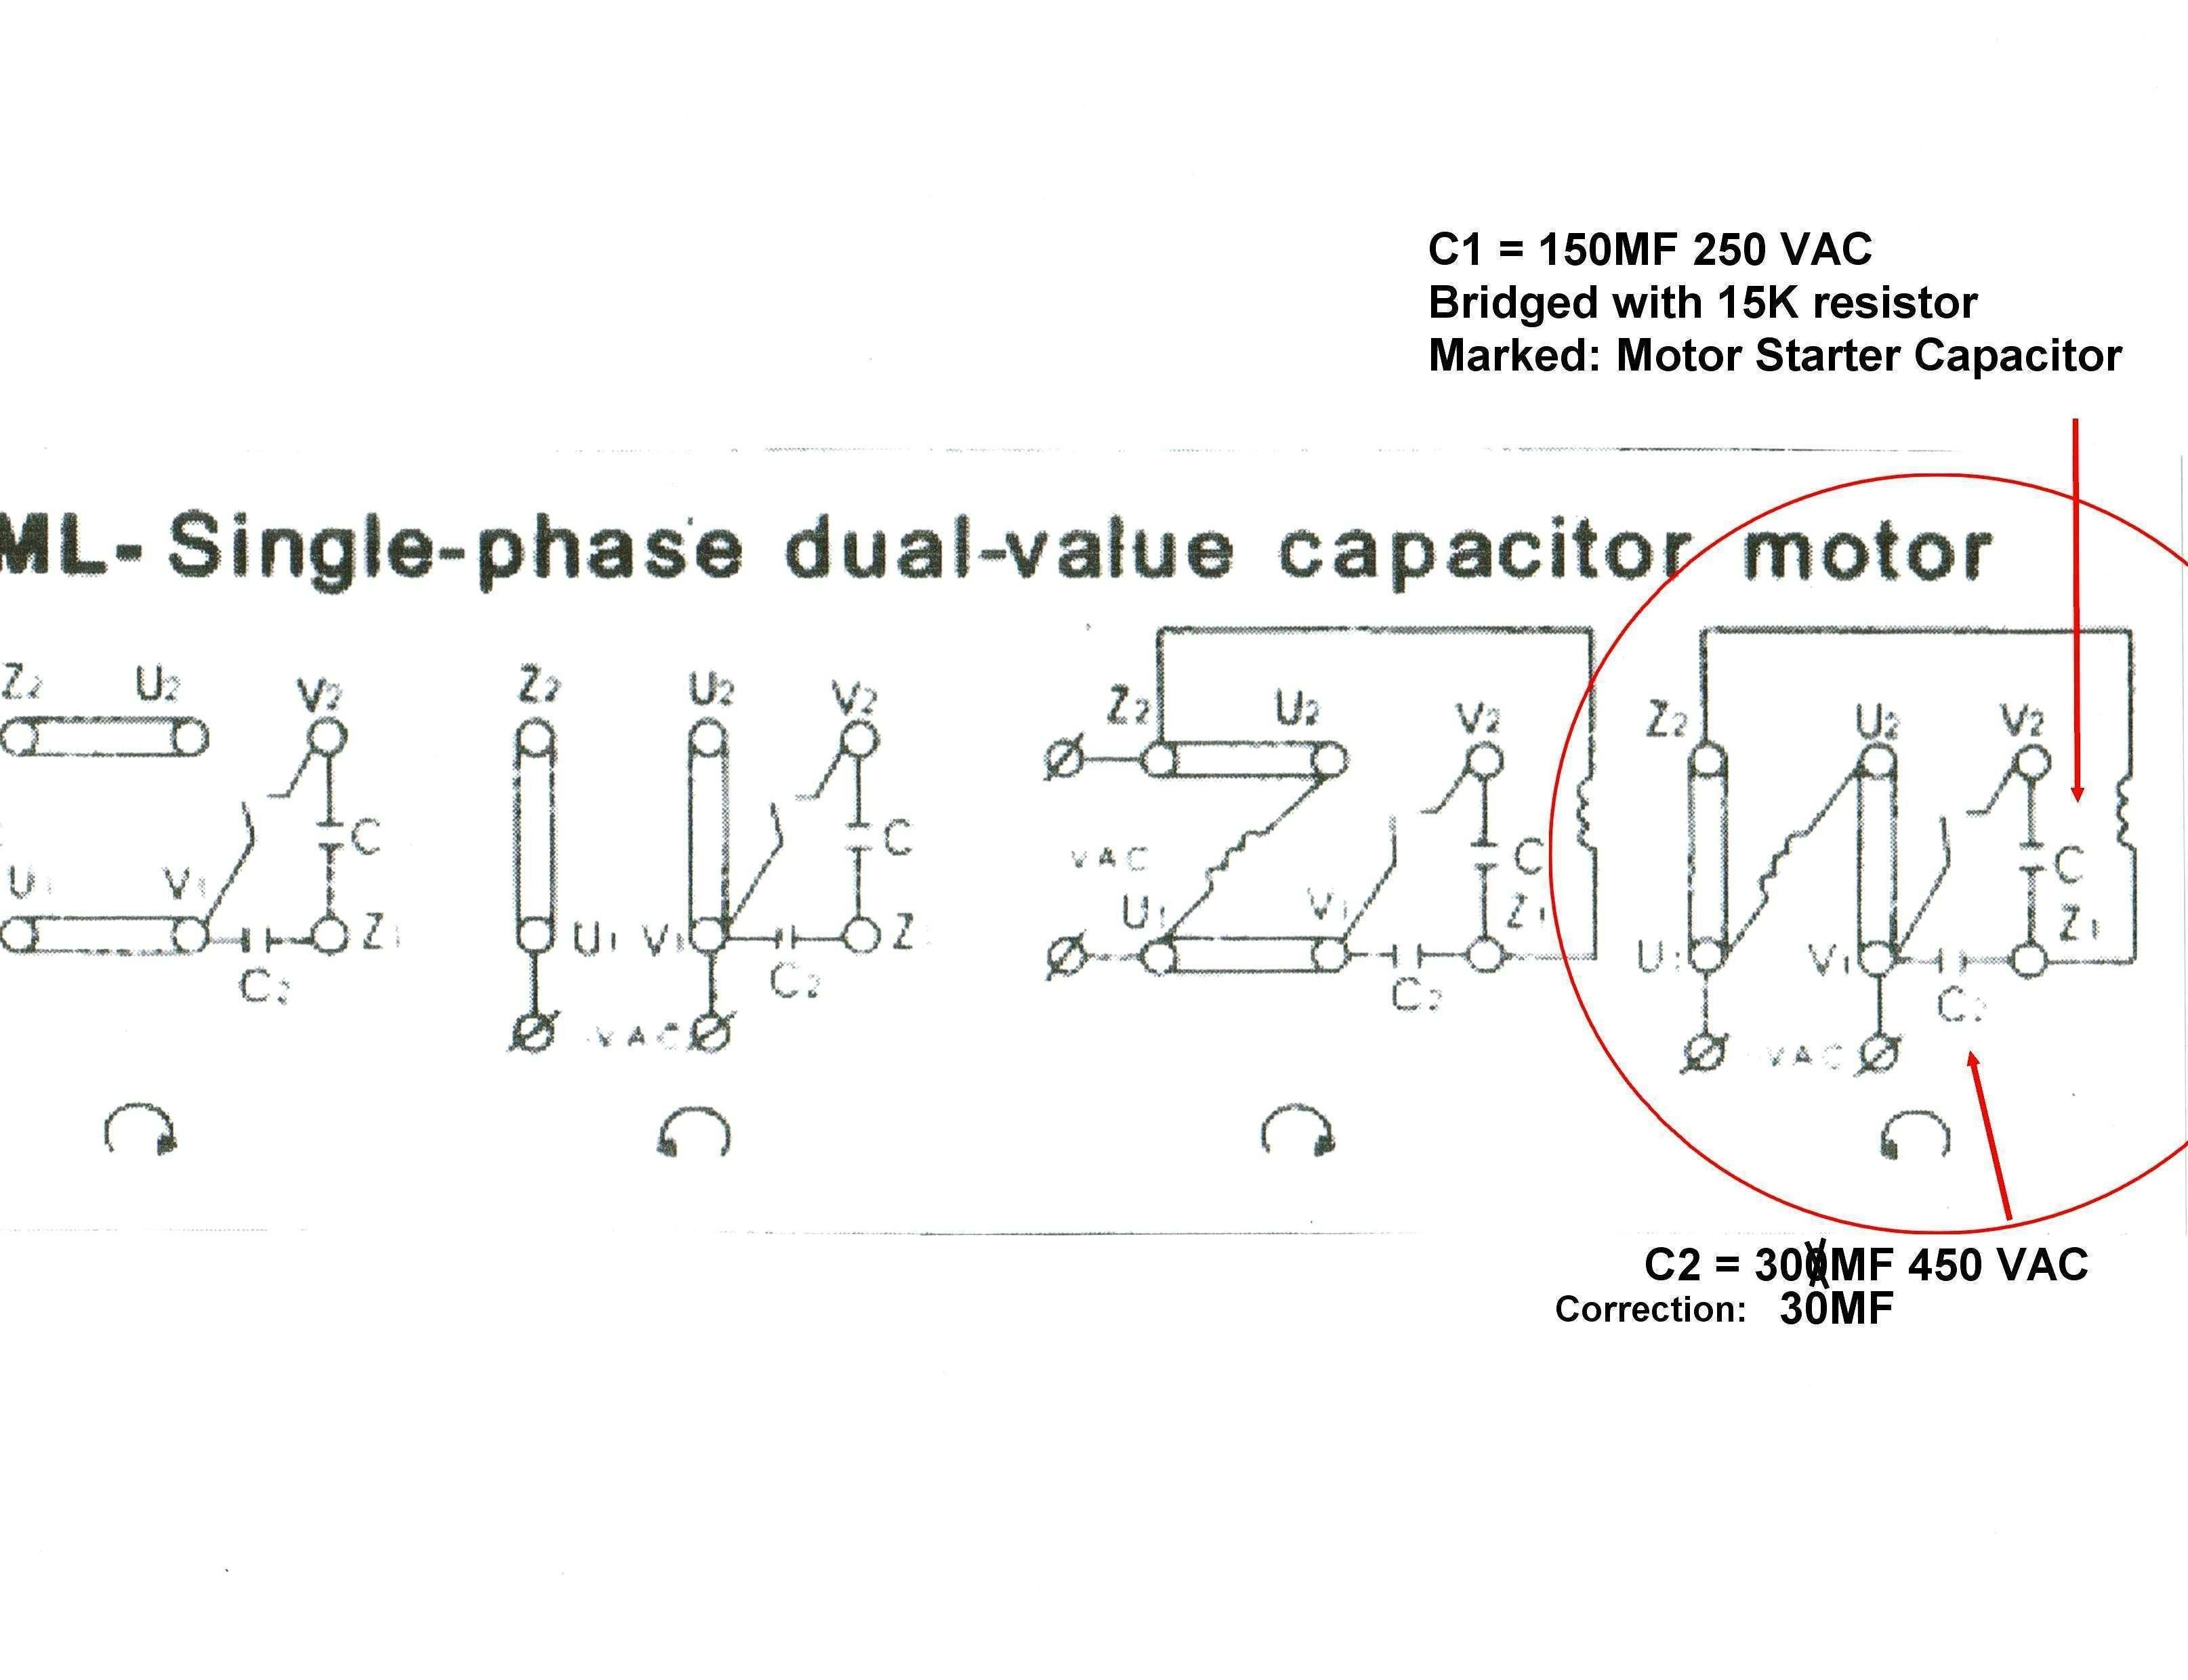 Wiring Diagram 3 Phase Electric Motor Valid 3 Phase Motor Wiring Diagram 9 Leads Perfect Luxury 9 Lead Motor